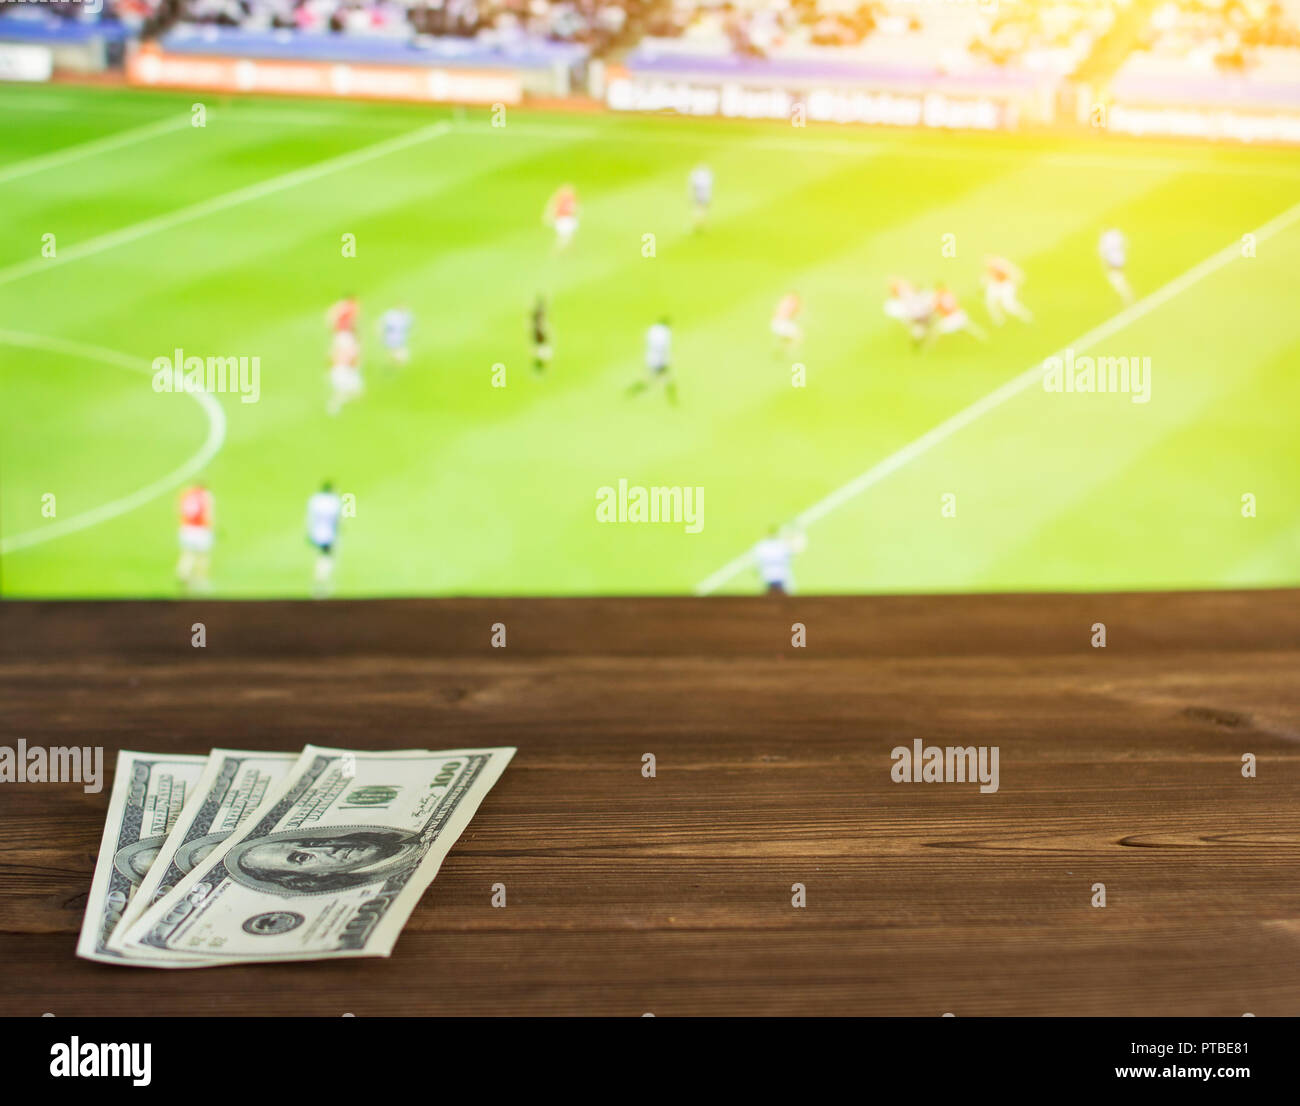 Money dollars on the background of the TV on which show Gaelic football, sports betting, dollars, Gaelic Football Stock Photo